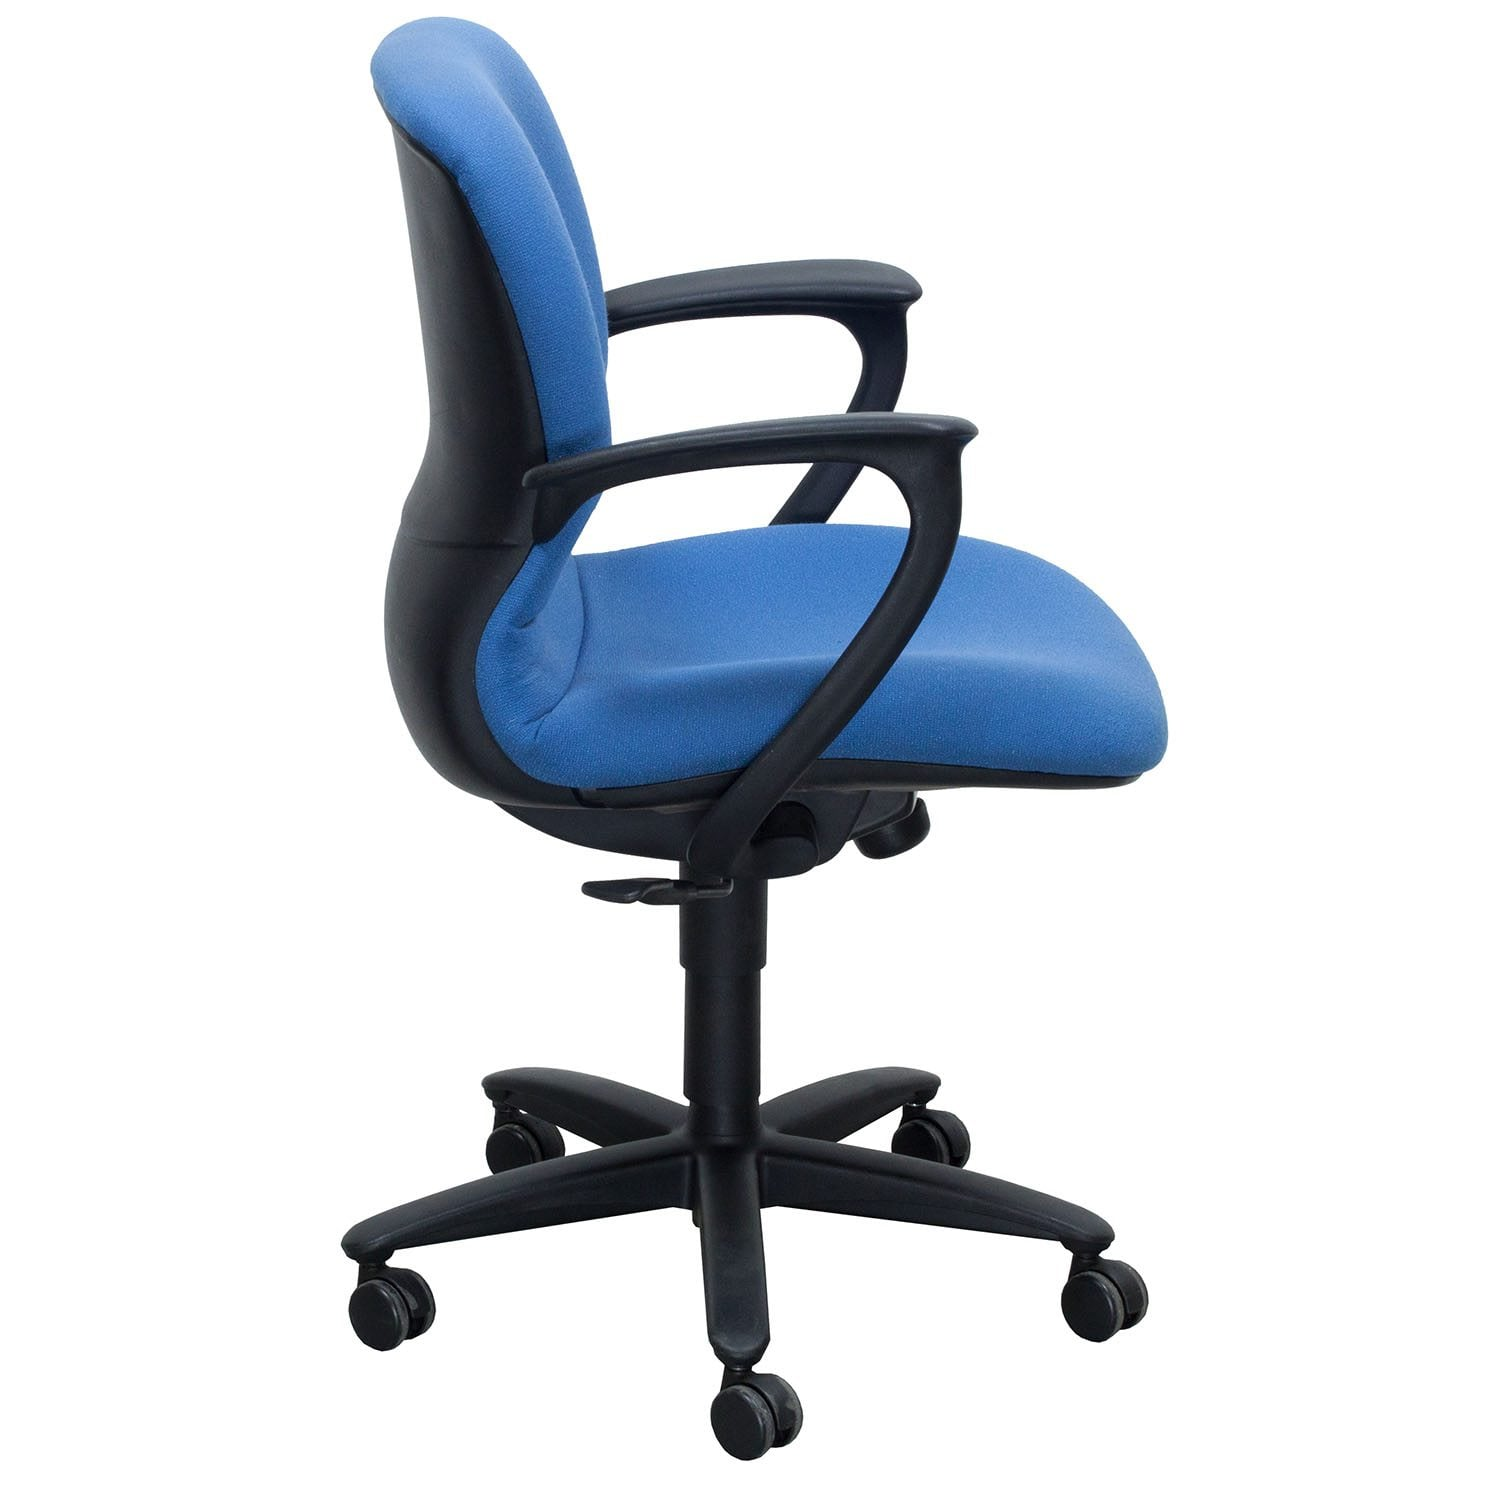 Haworth Improv Desk Used Conference Chair Blue National